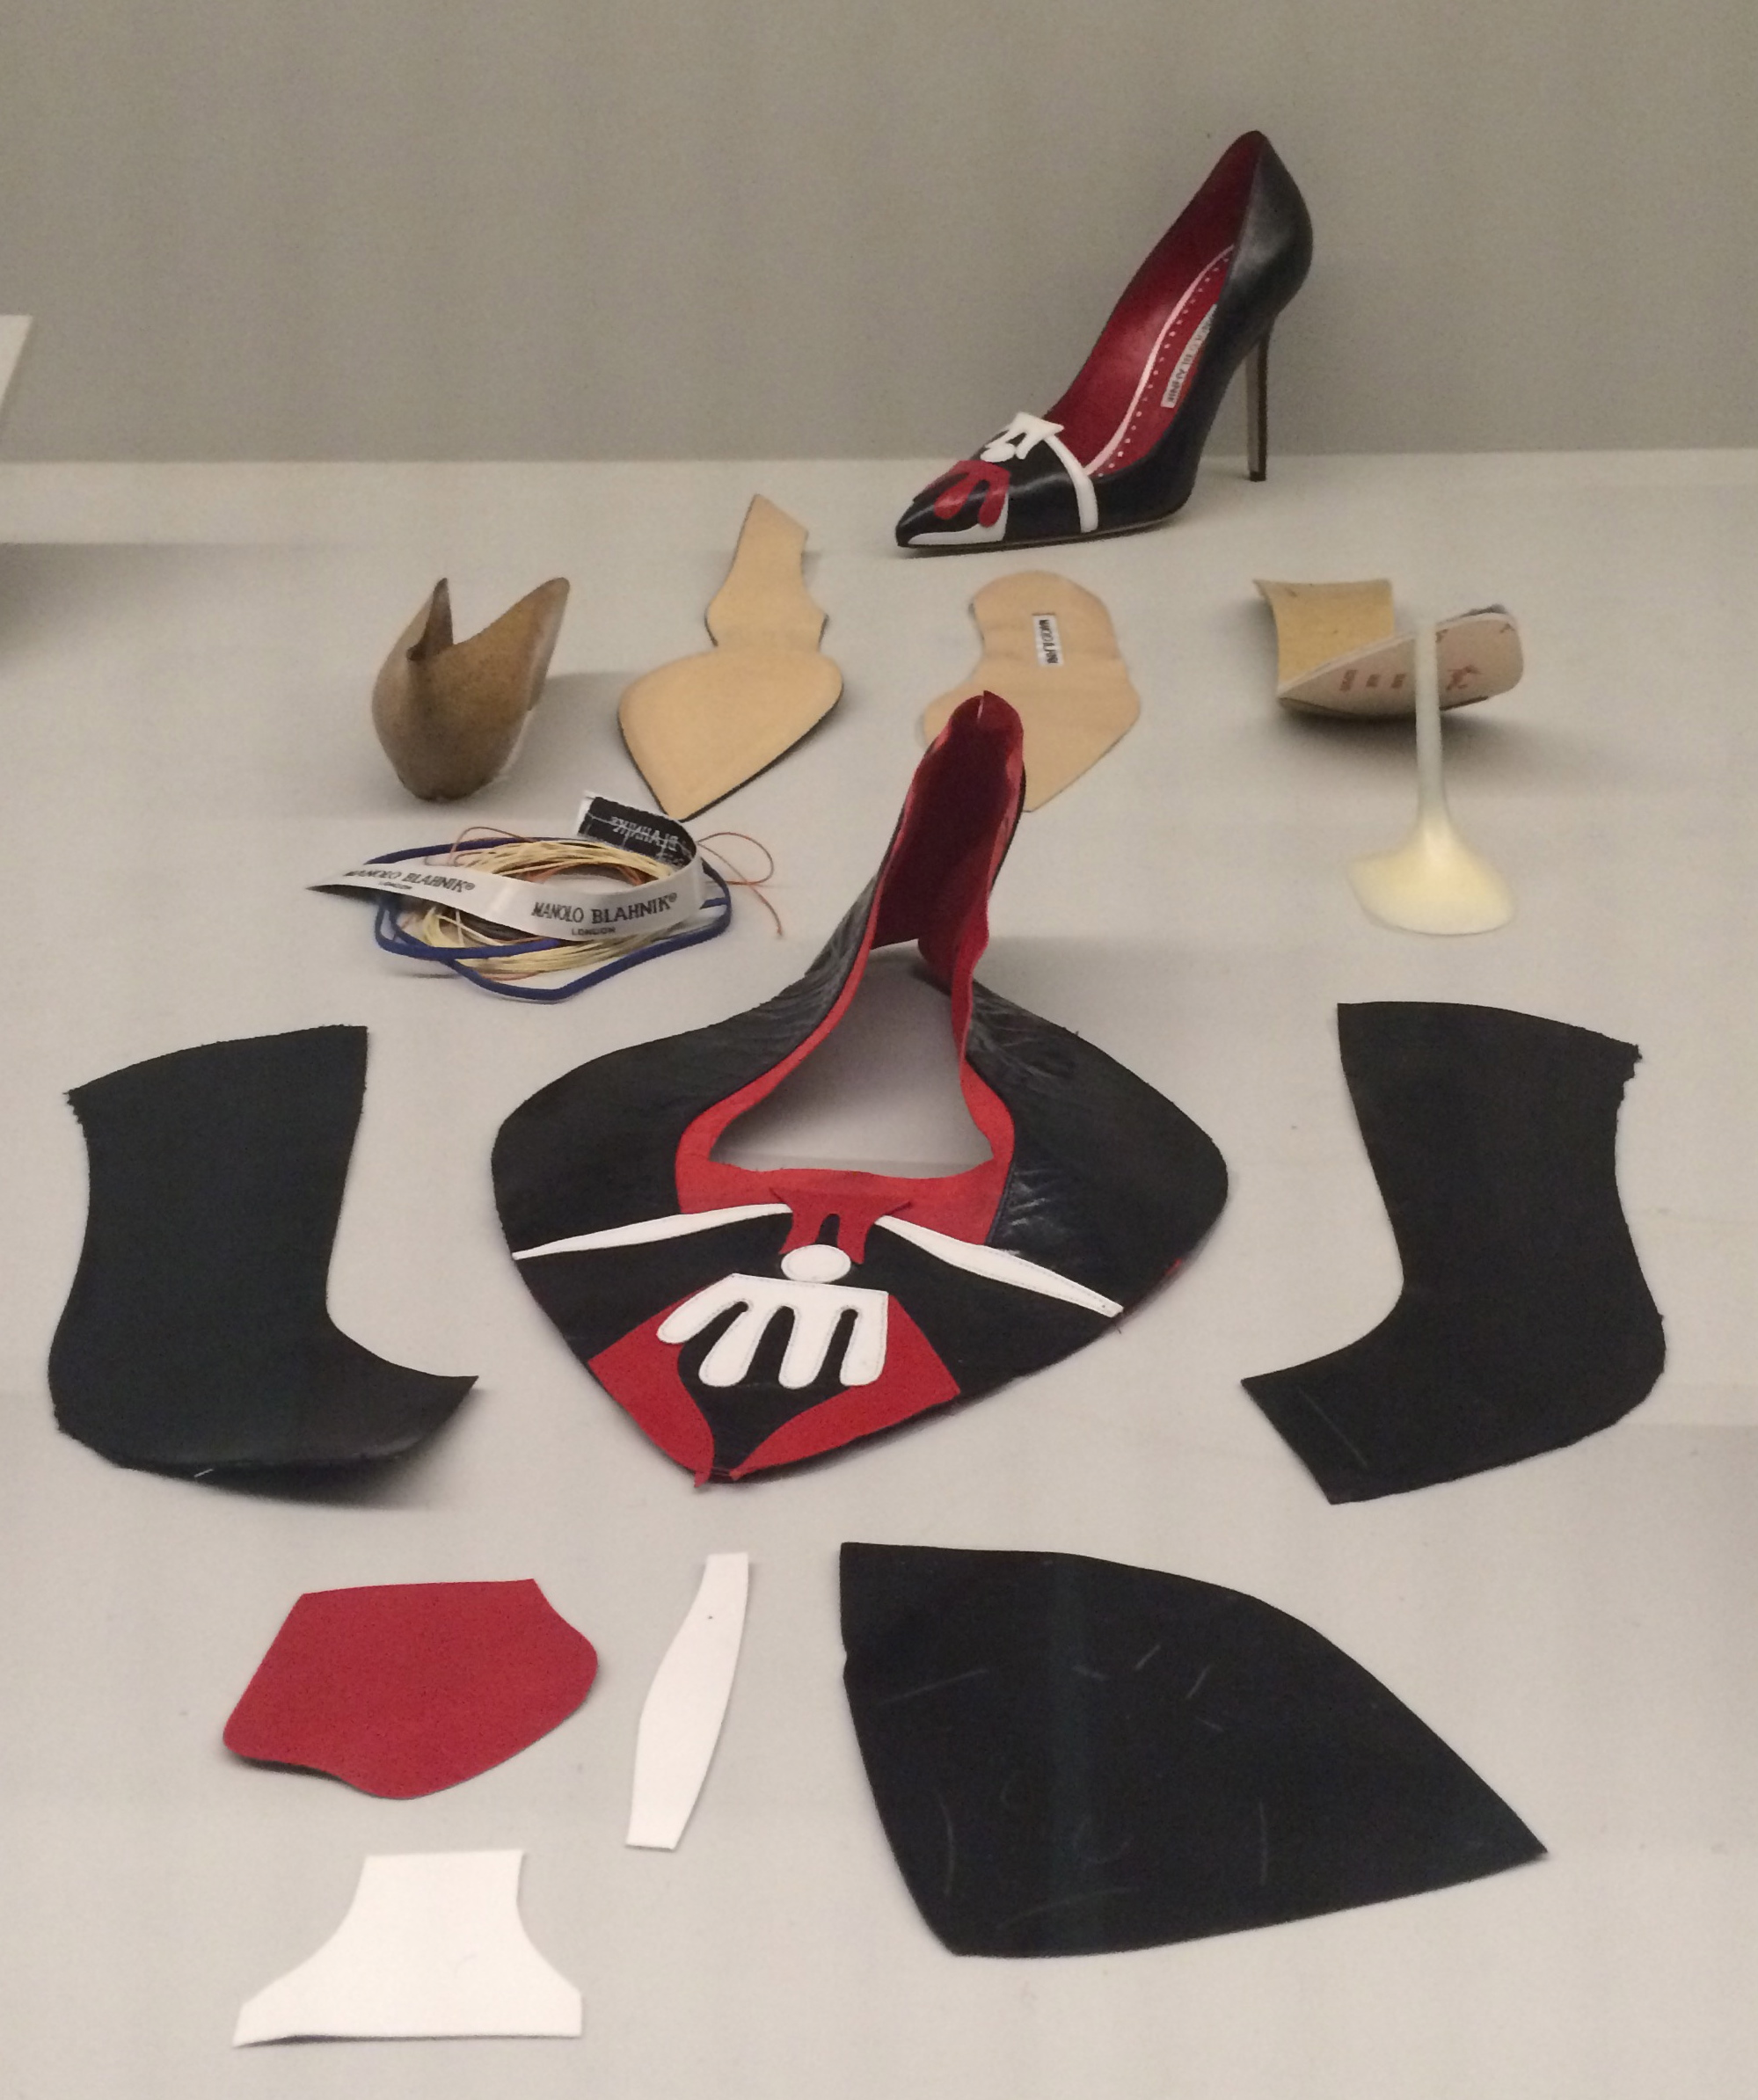 manolo blahnik deconstructed